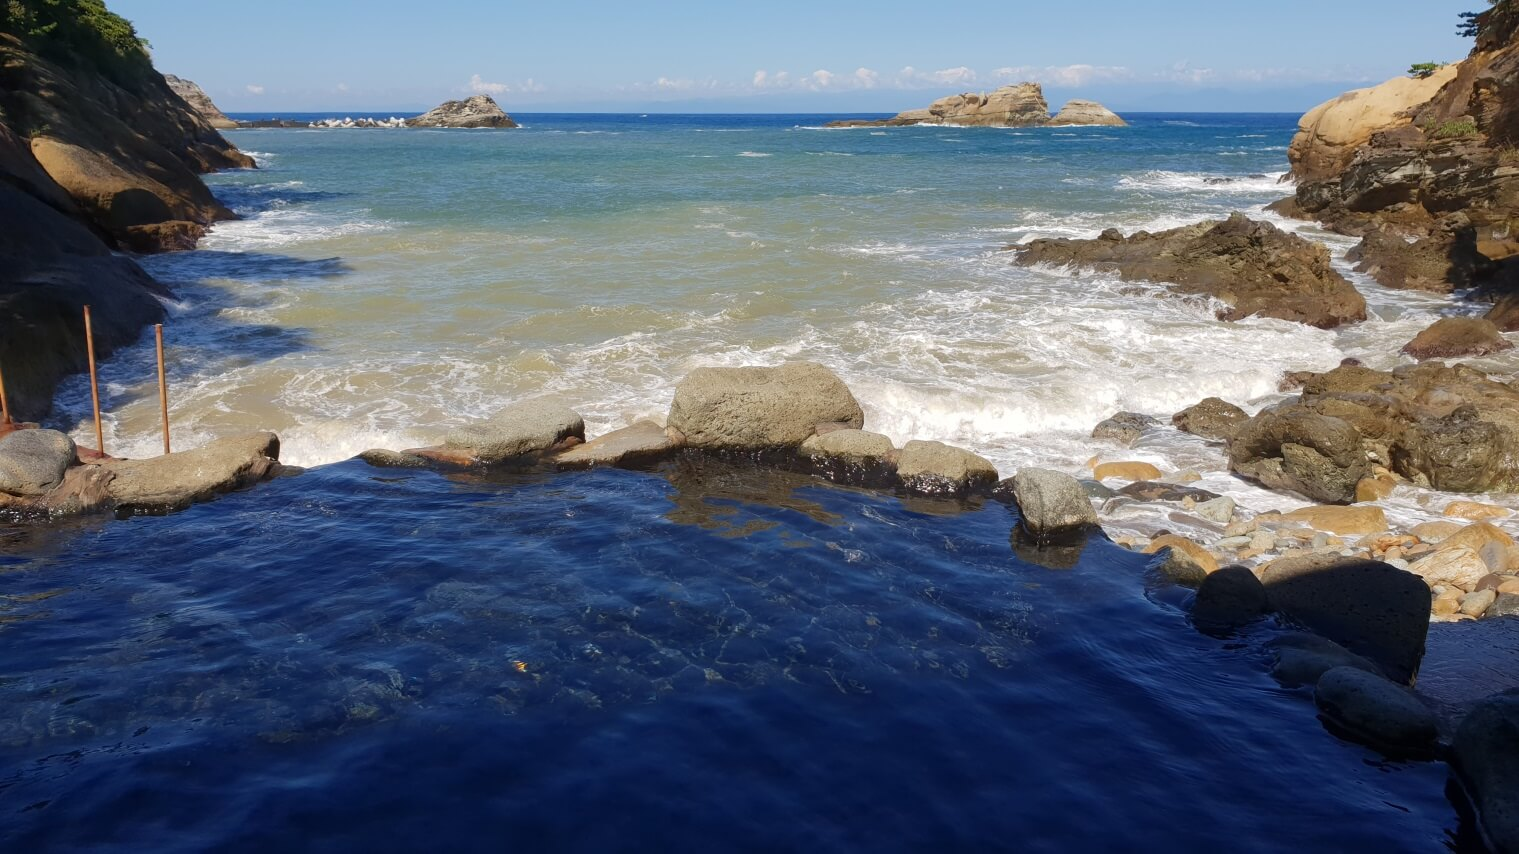 One of several free coastal hot pools scattered along the Izu Peninsula.